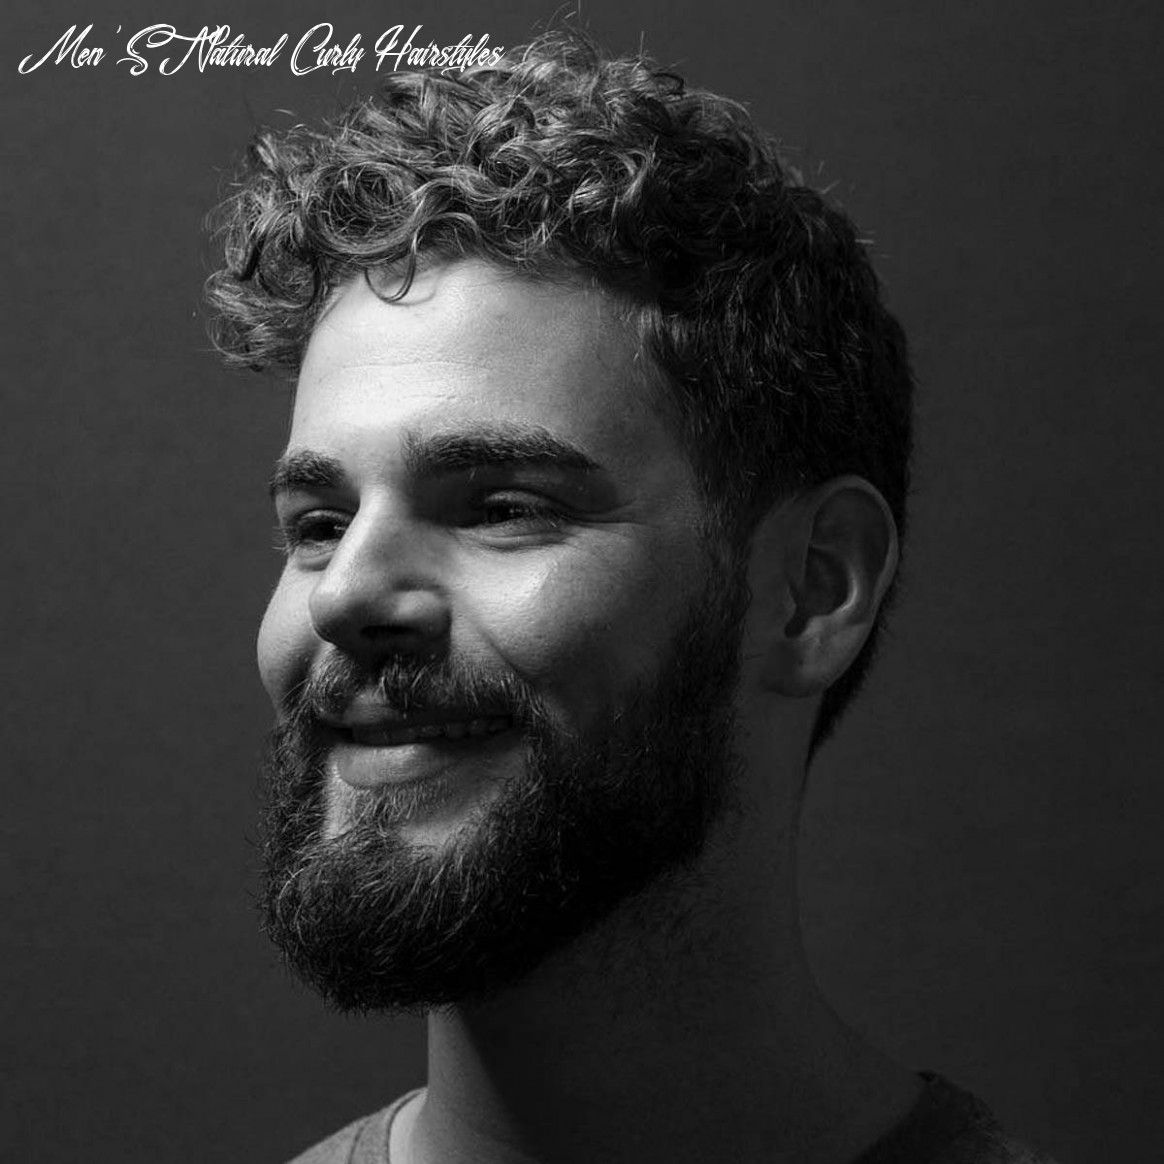 12 Stylish Curly Hairstyle & Haircuts For Men [12 Edition]